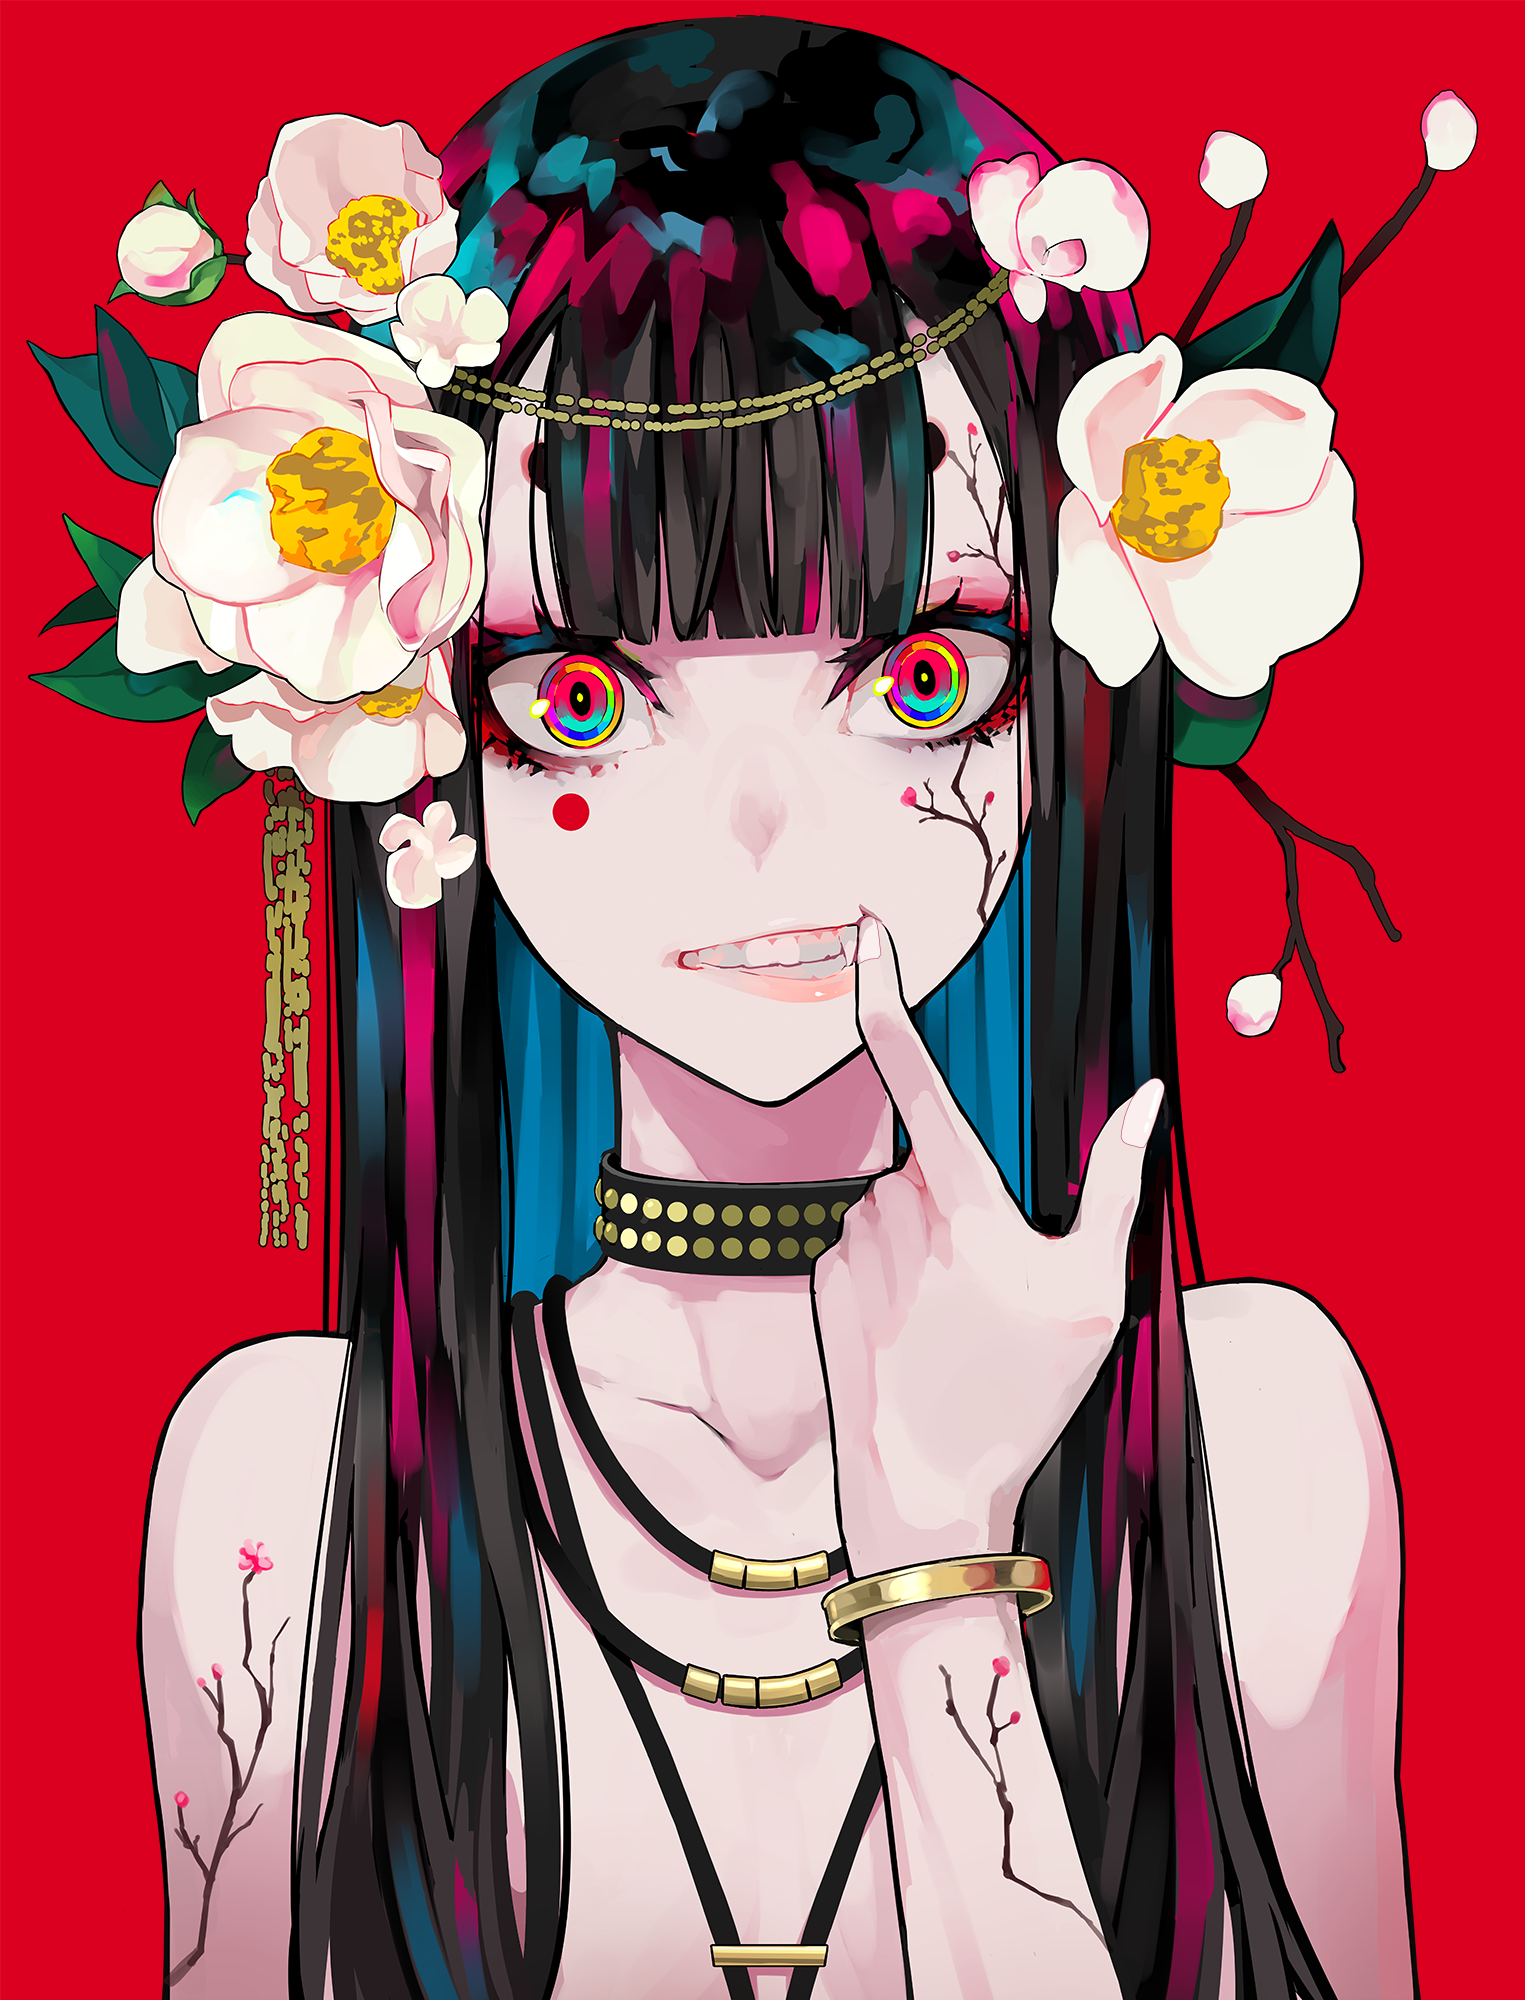 Anime 1525x2000 Women Portrait Display Artwork Digital Art 2d Looking At Viewer Fangs Flower In Hair Necklace Long Hair P Anime Art Girl Anime Art Kawaii Anime